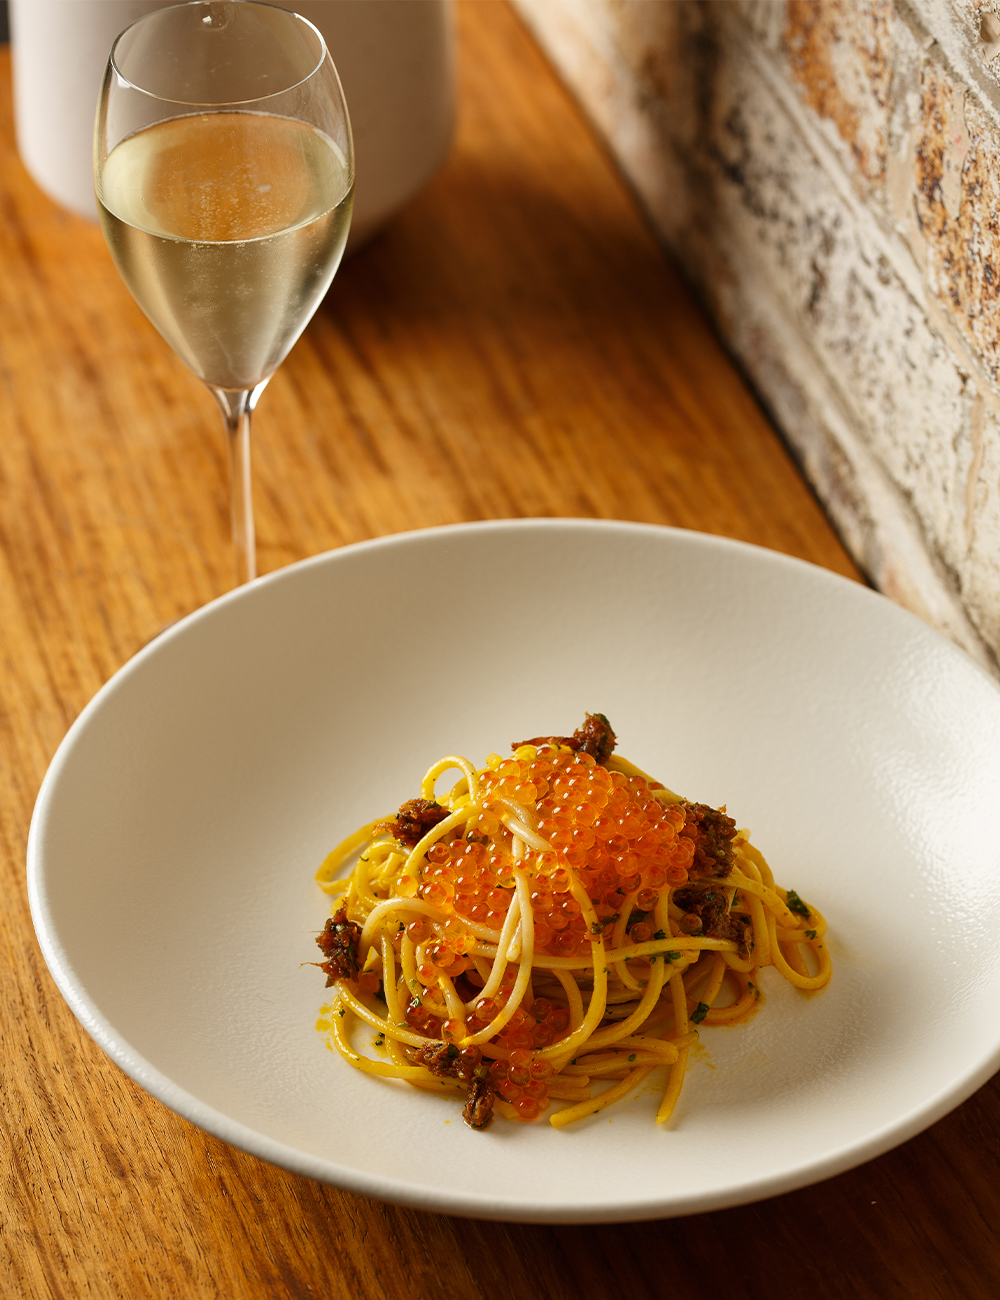 a bowl of spaghetti and a glass of prosecco on a bench